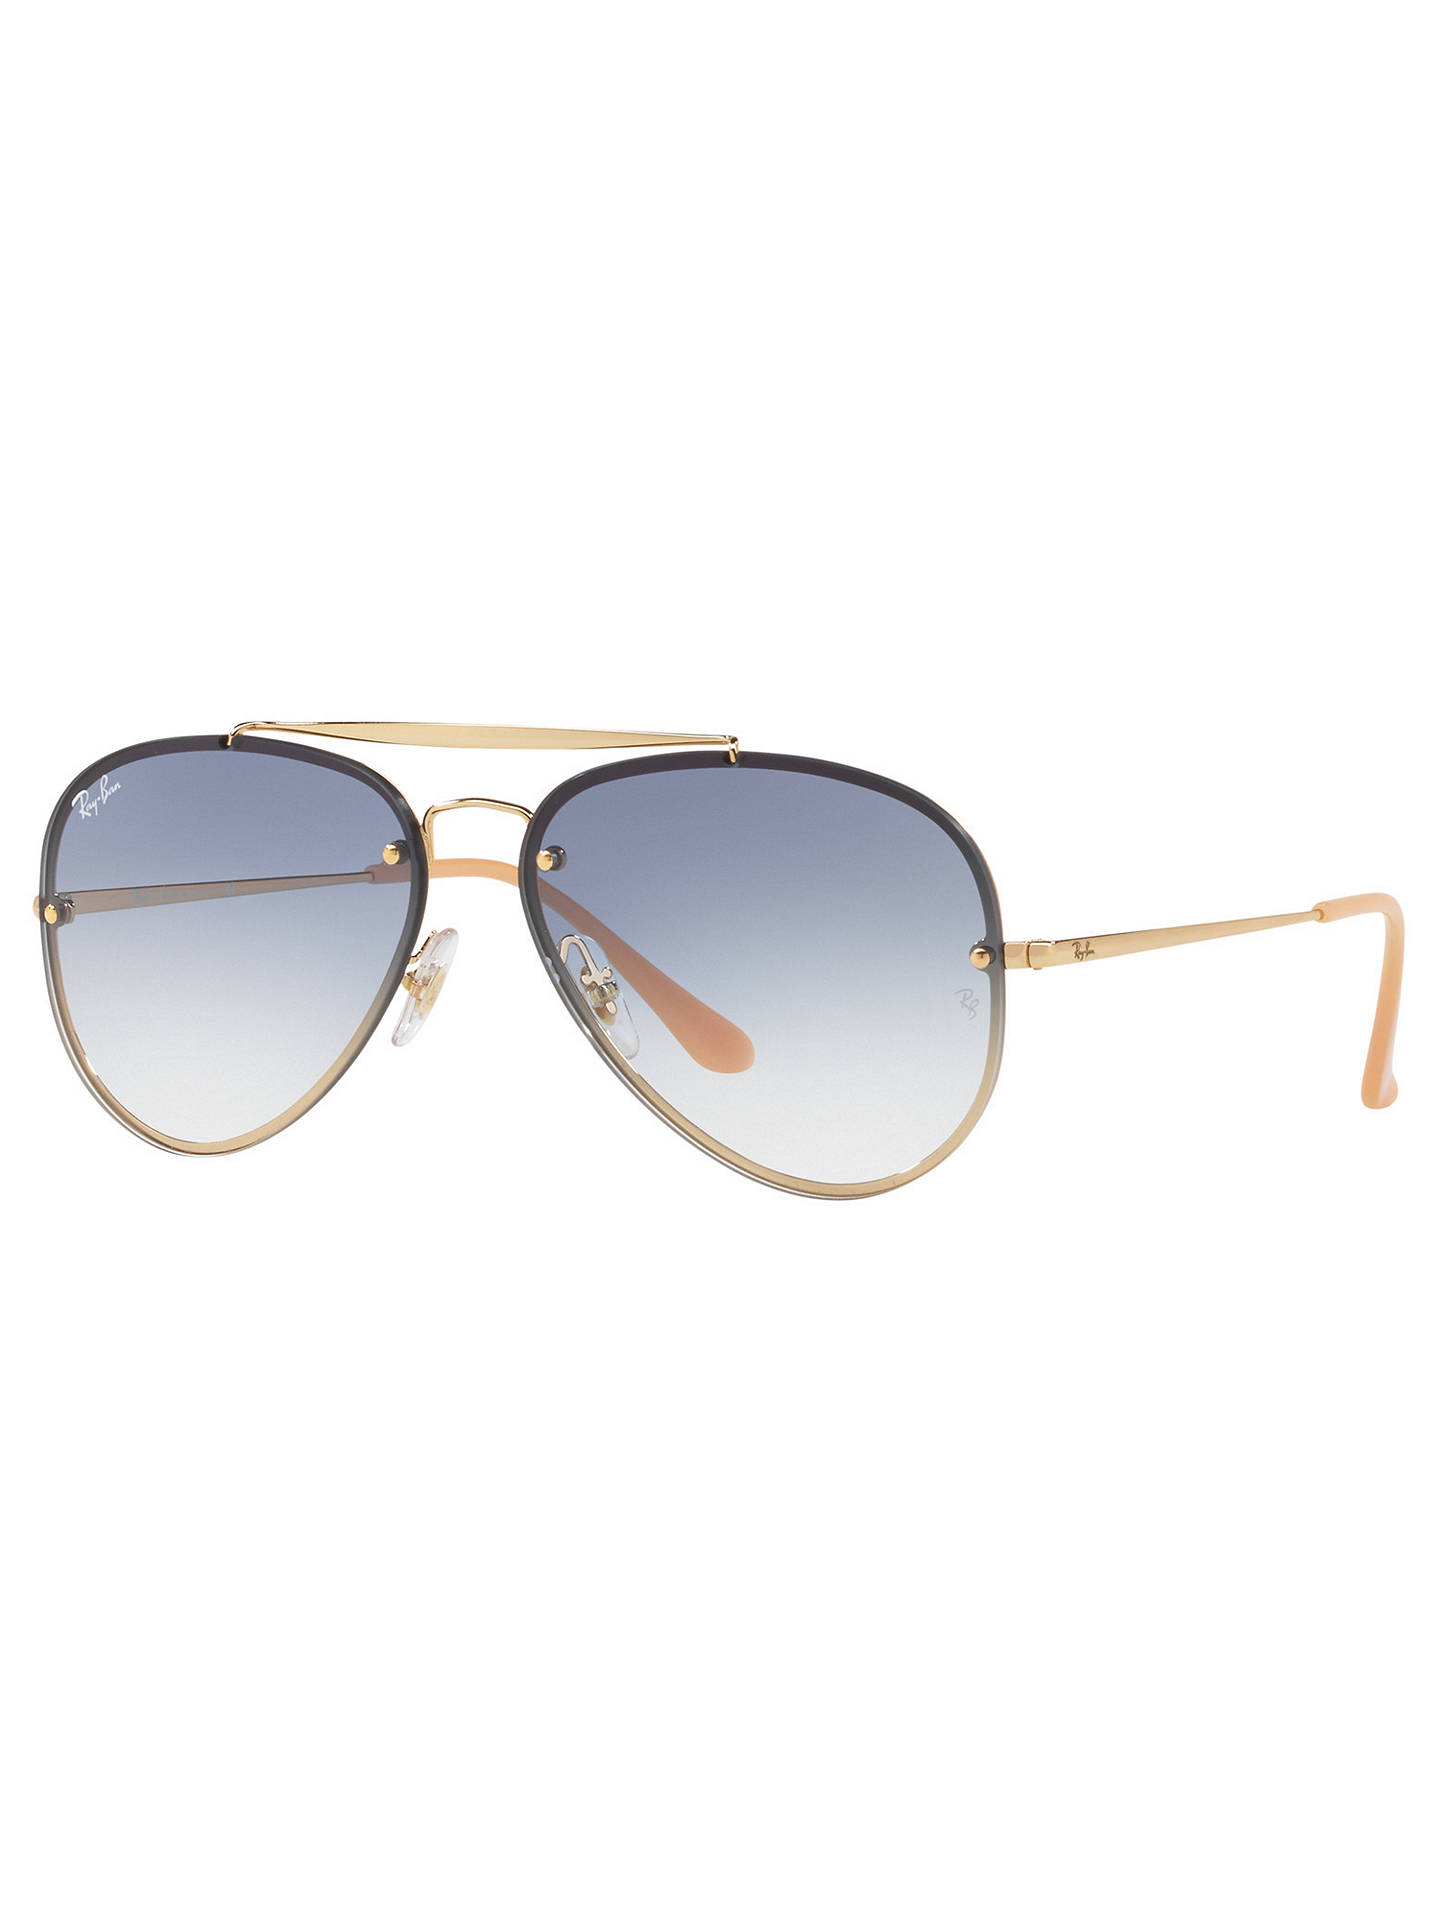 9813276c99 Buy Ray-Ban RB3584N Blaze Aviator Sunglasses